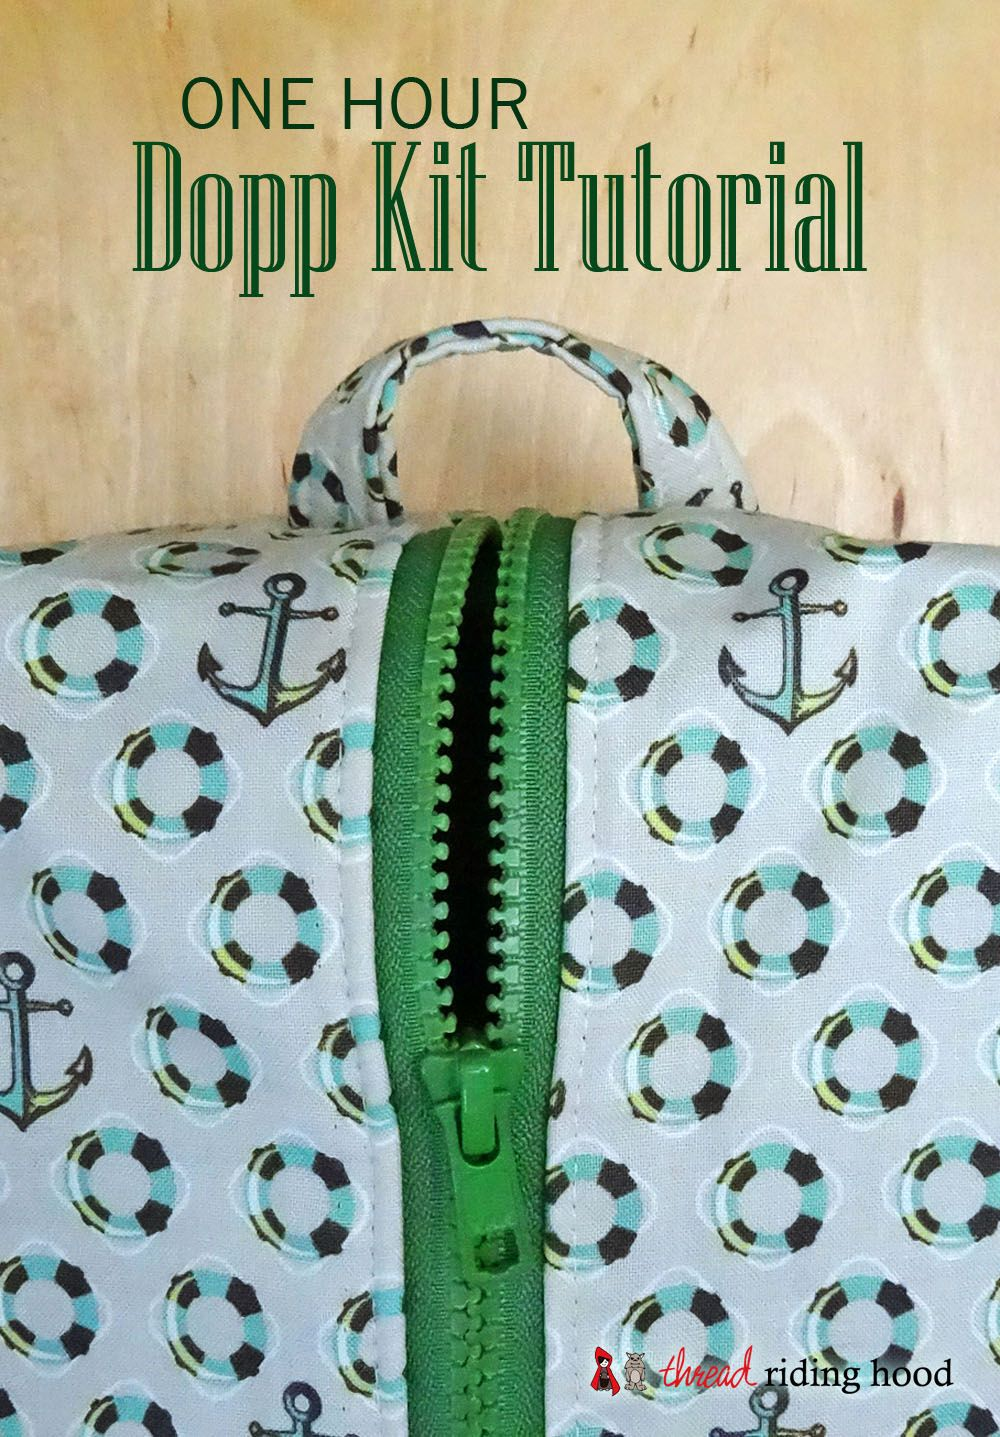 Free Dopp Kit Pattern And Tutorial Sewing Accessories Zipper Value Pack Travel Size Pouch Installation Zippered Bag Handmade Gift Ideas Gifts For Men Craftsy Tutorials